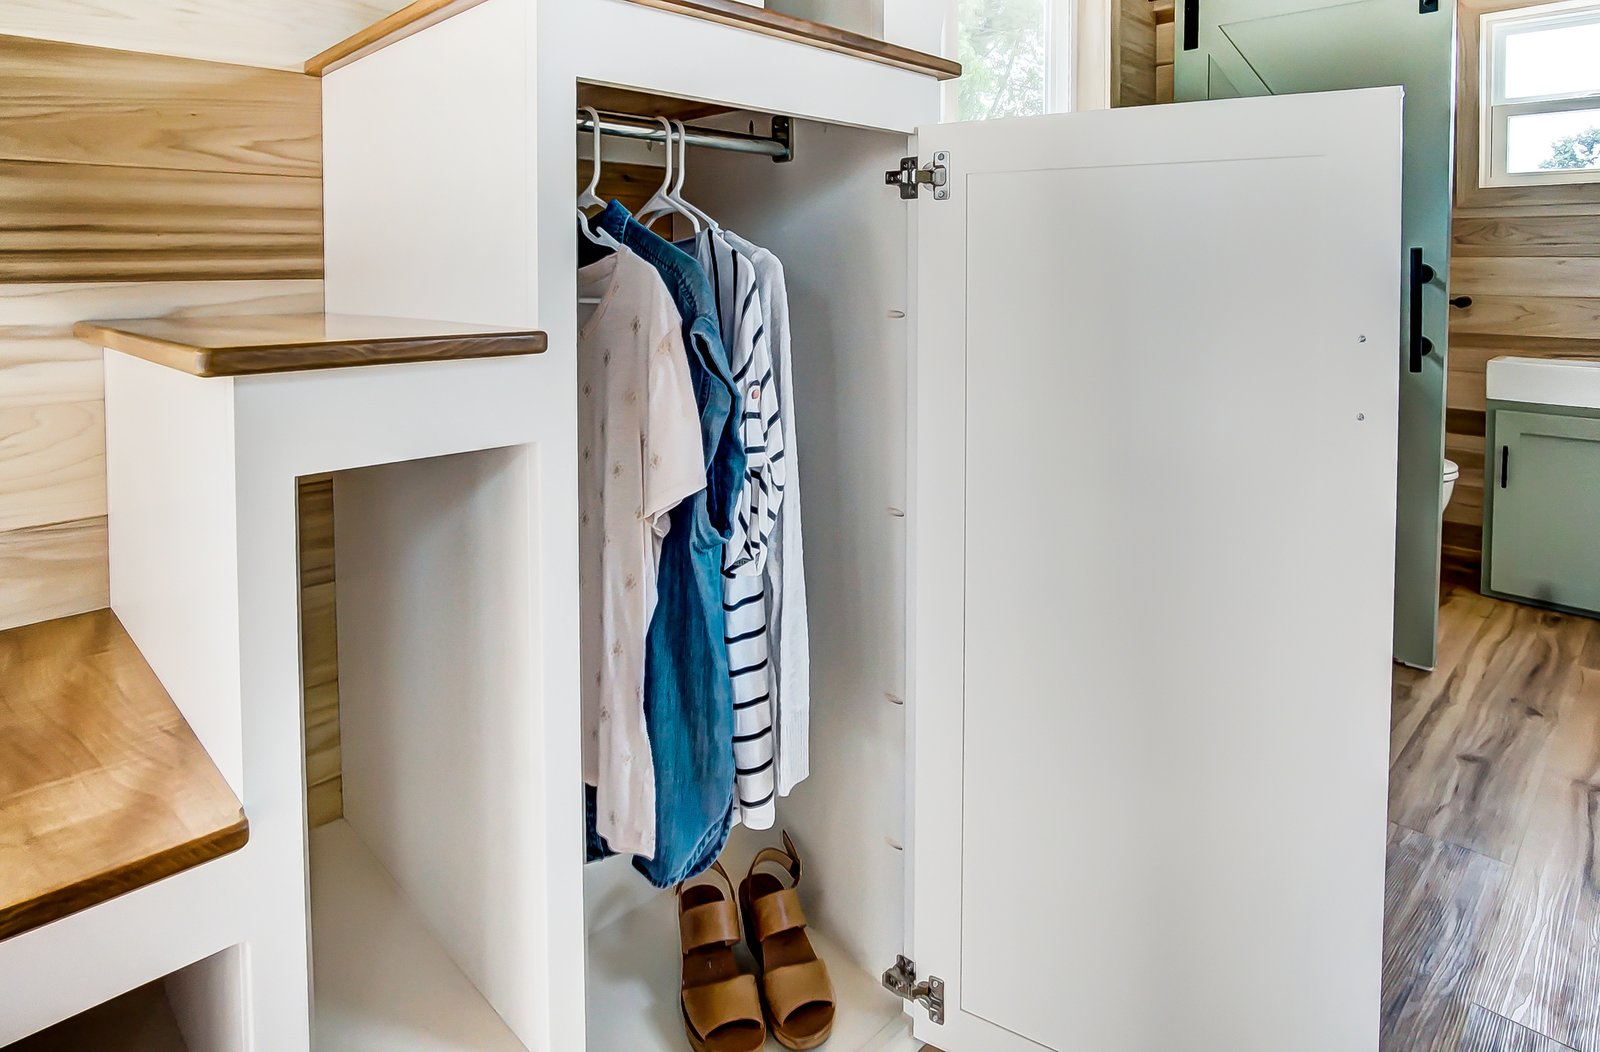 Storage Room, Closet Storage Type, and Under Stairs Storage Type Under the steps are built-in storage spaces.     Photo 9 of 11 in This 270-Square-Foot Tiny Home Is Now Up For Grabs at $89K